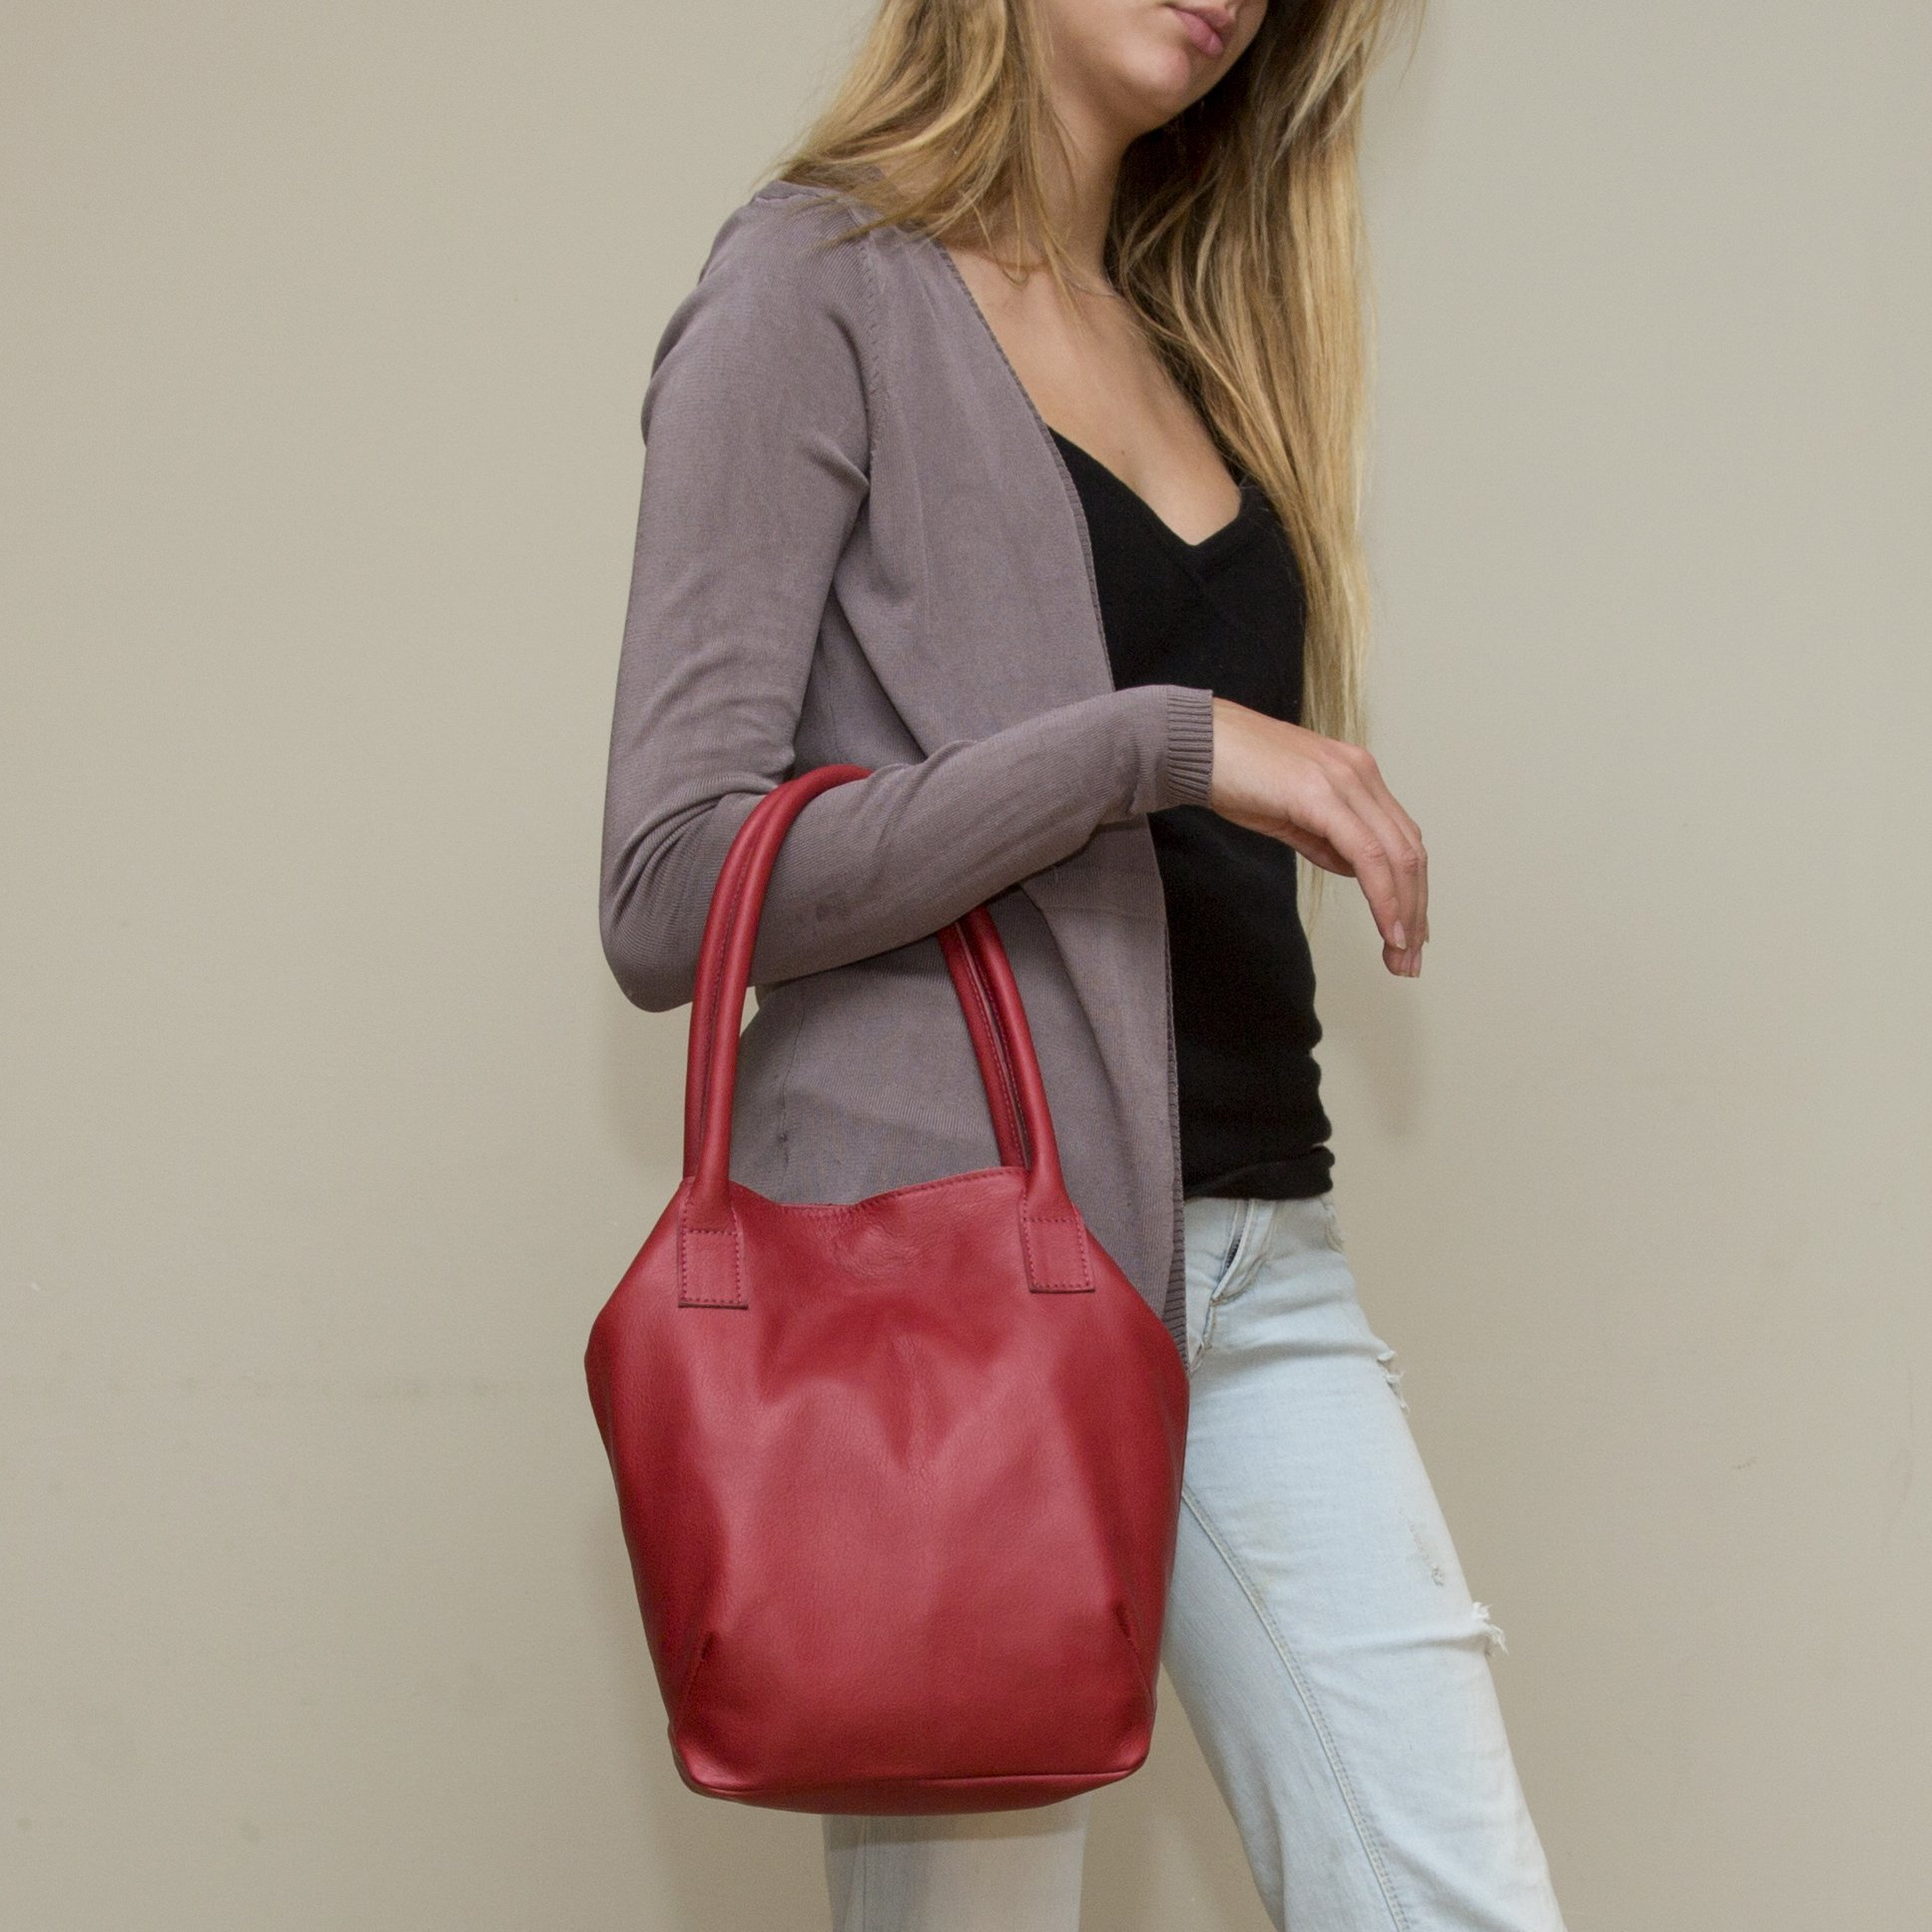 Small handmade casual evening hand or shoulder bag red leather lightweight purse for woman